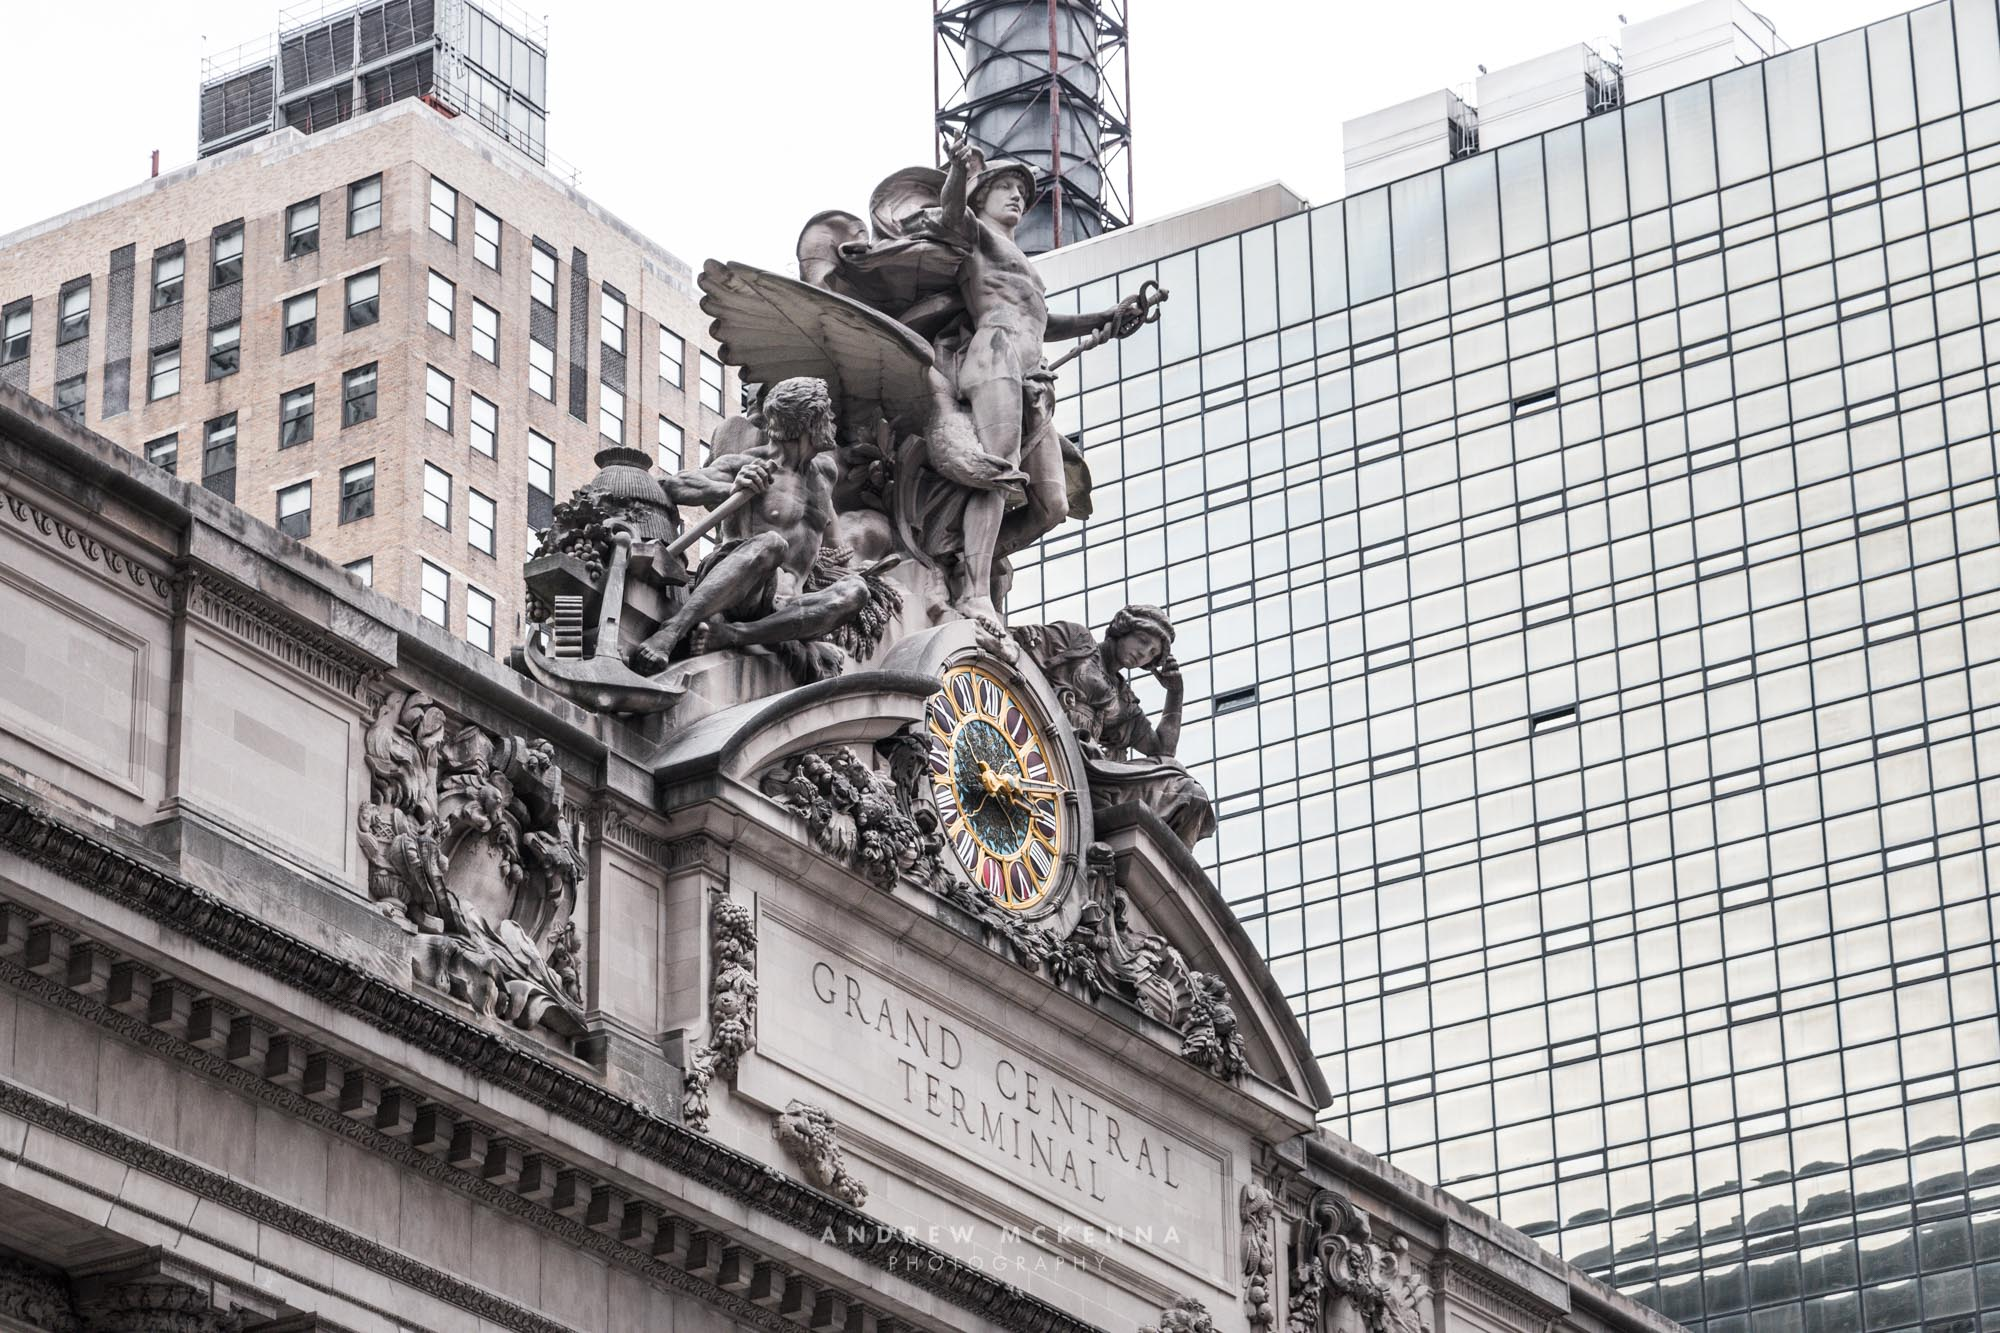 New York NYC Photographer Travel photographer Grand central term